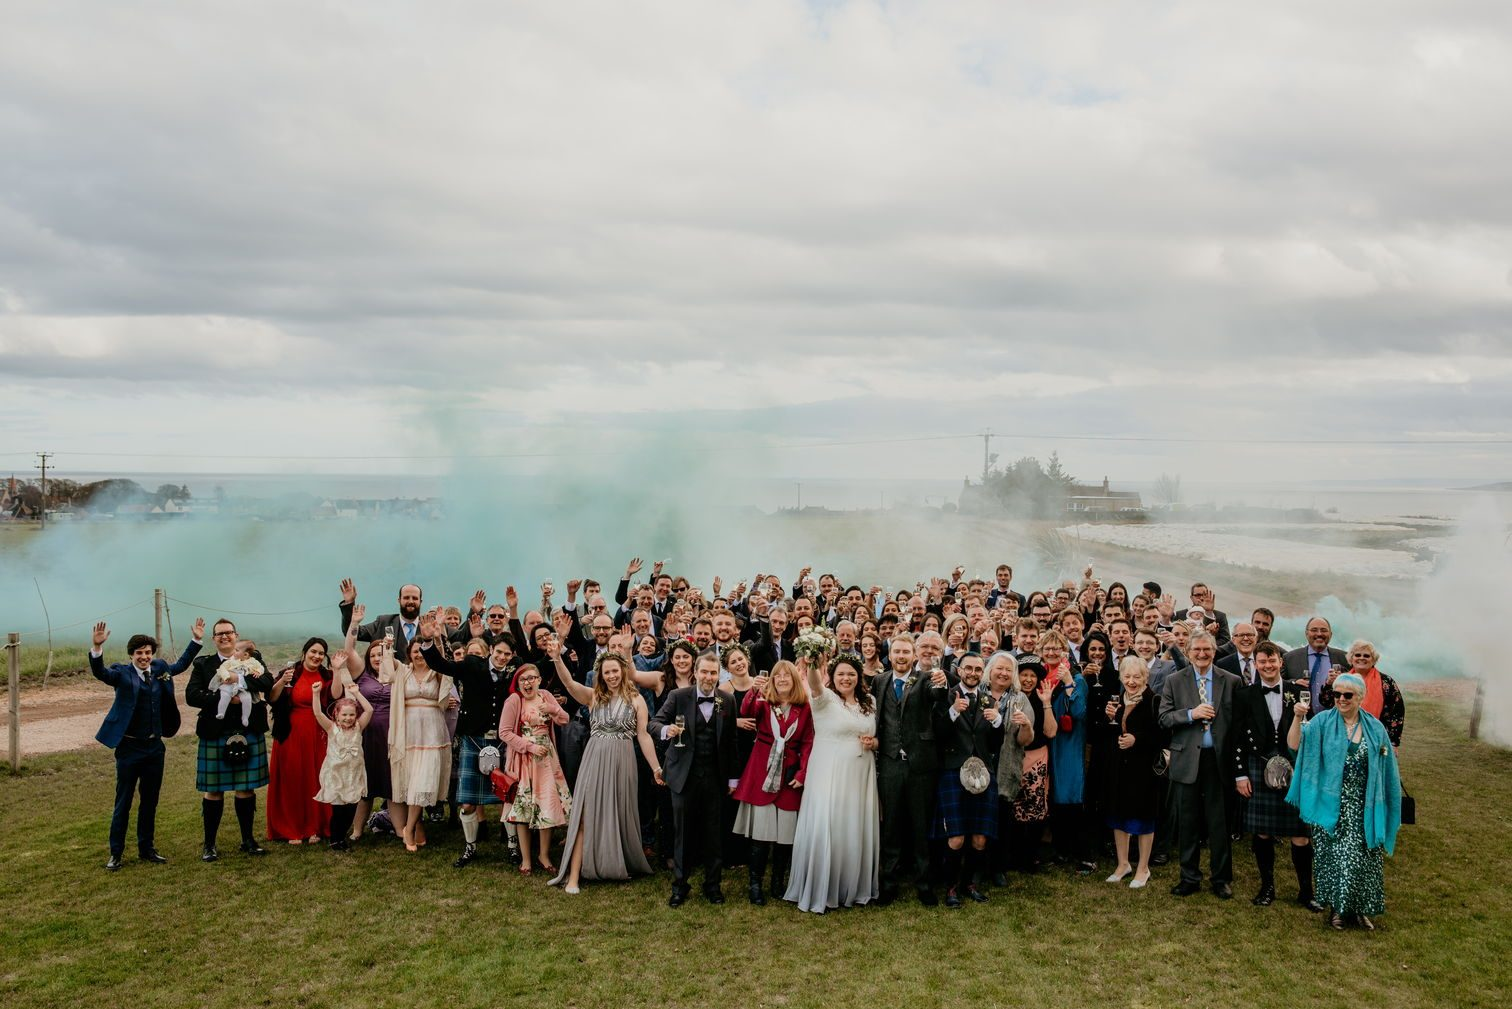 Group photo with smoke in the background